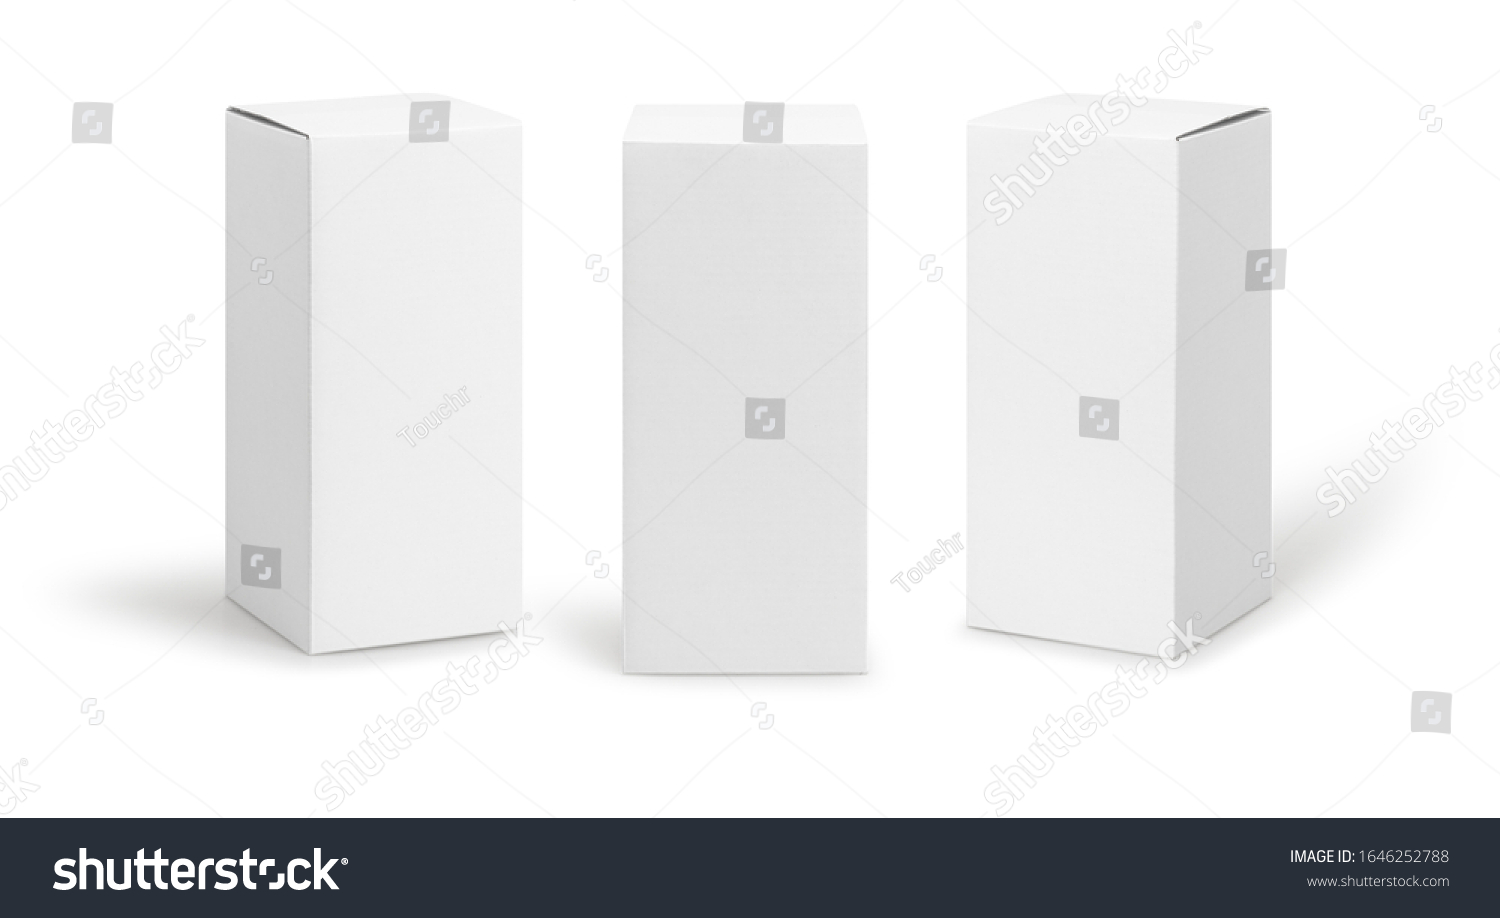 Set of White box tall shape product packaging in side view and front view isolated on white background with clipping path. #1646252788